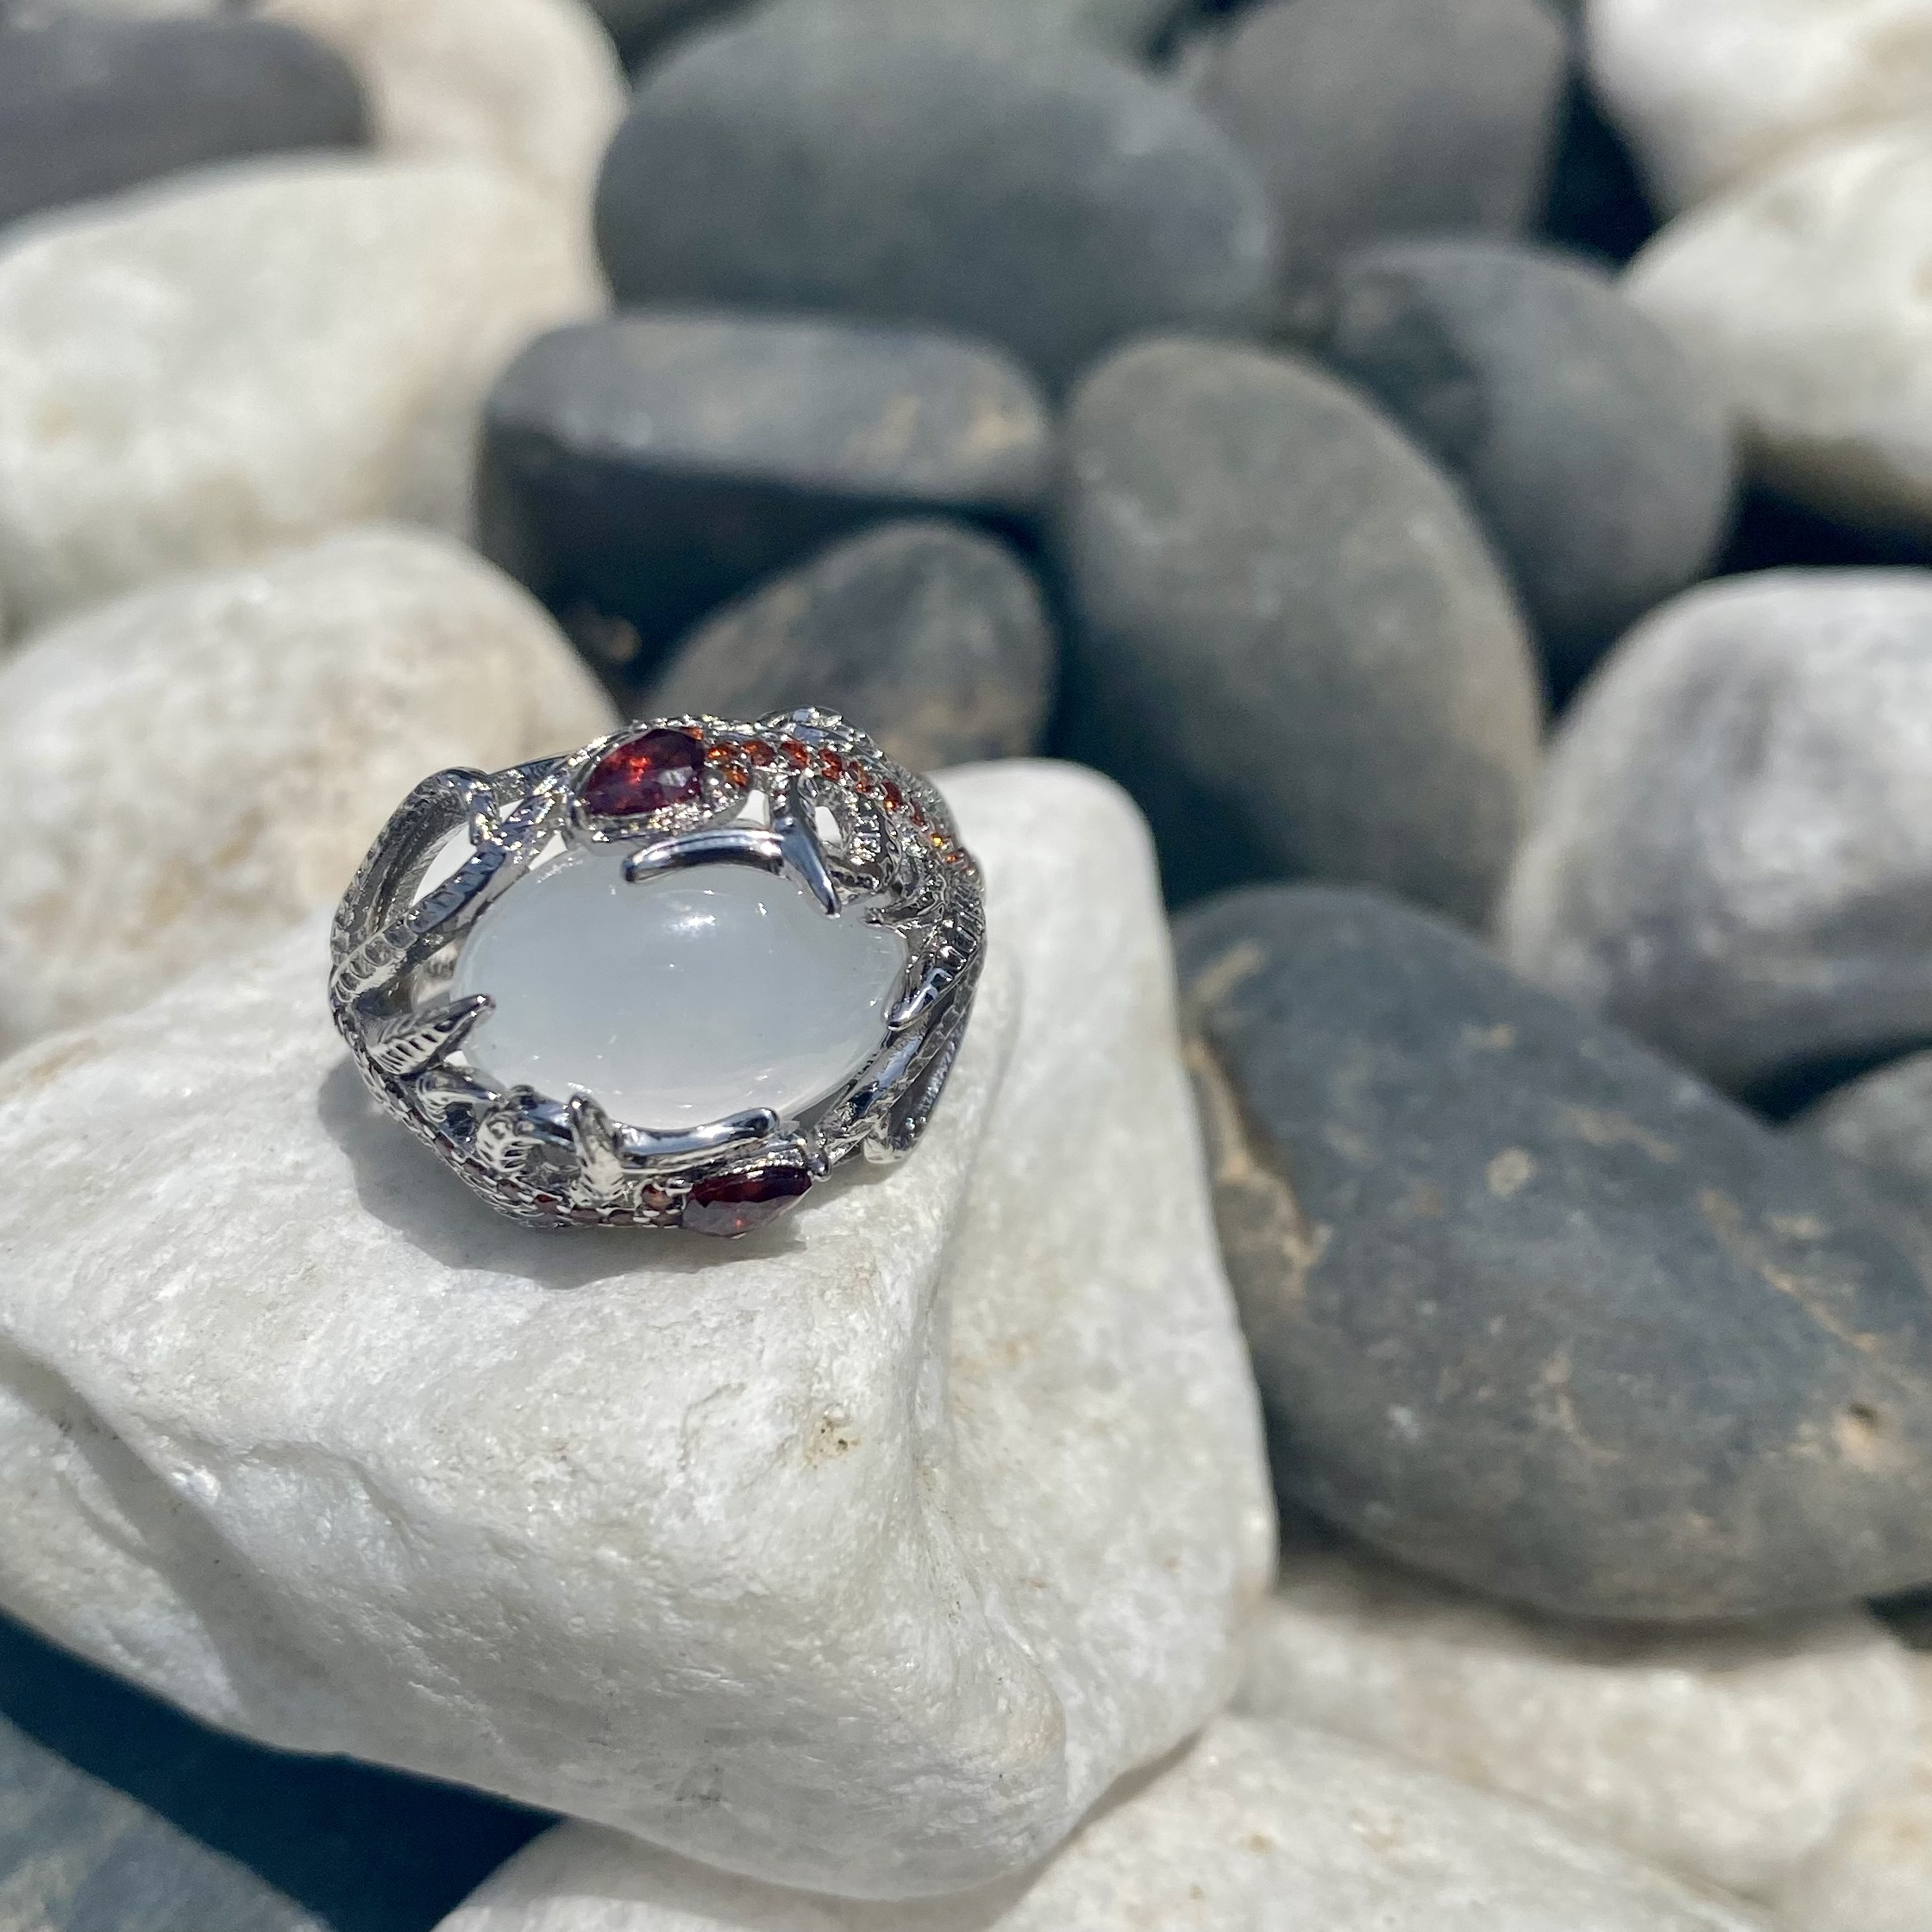 The moonstone and Rubies ring